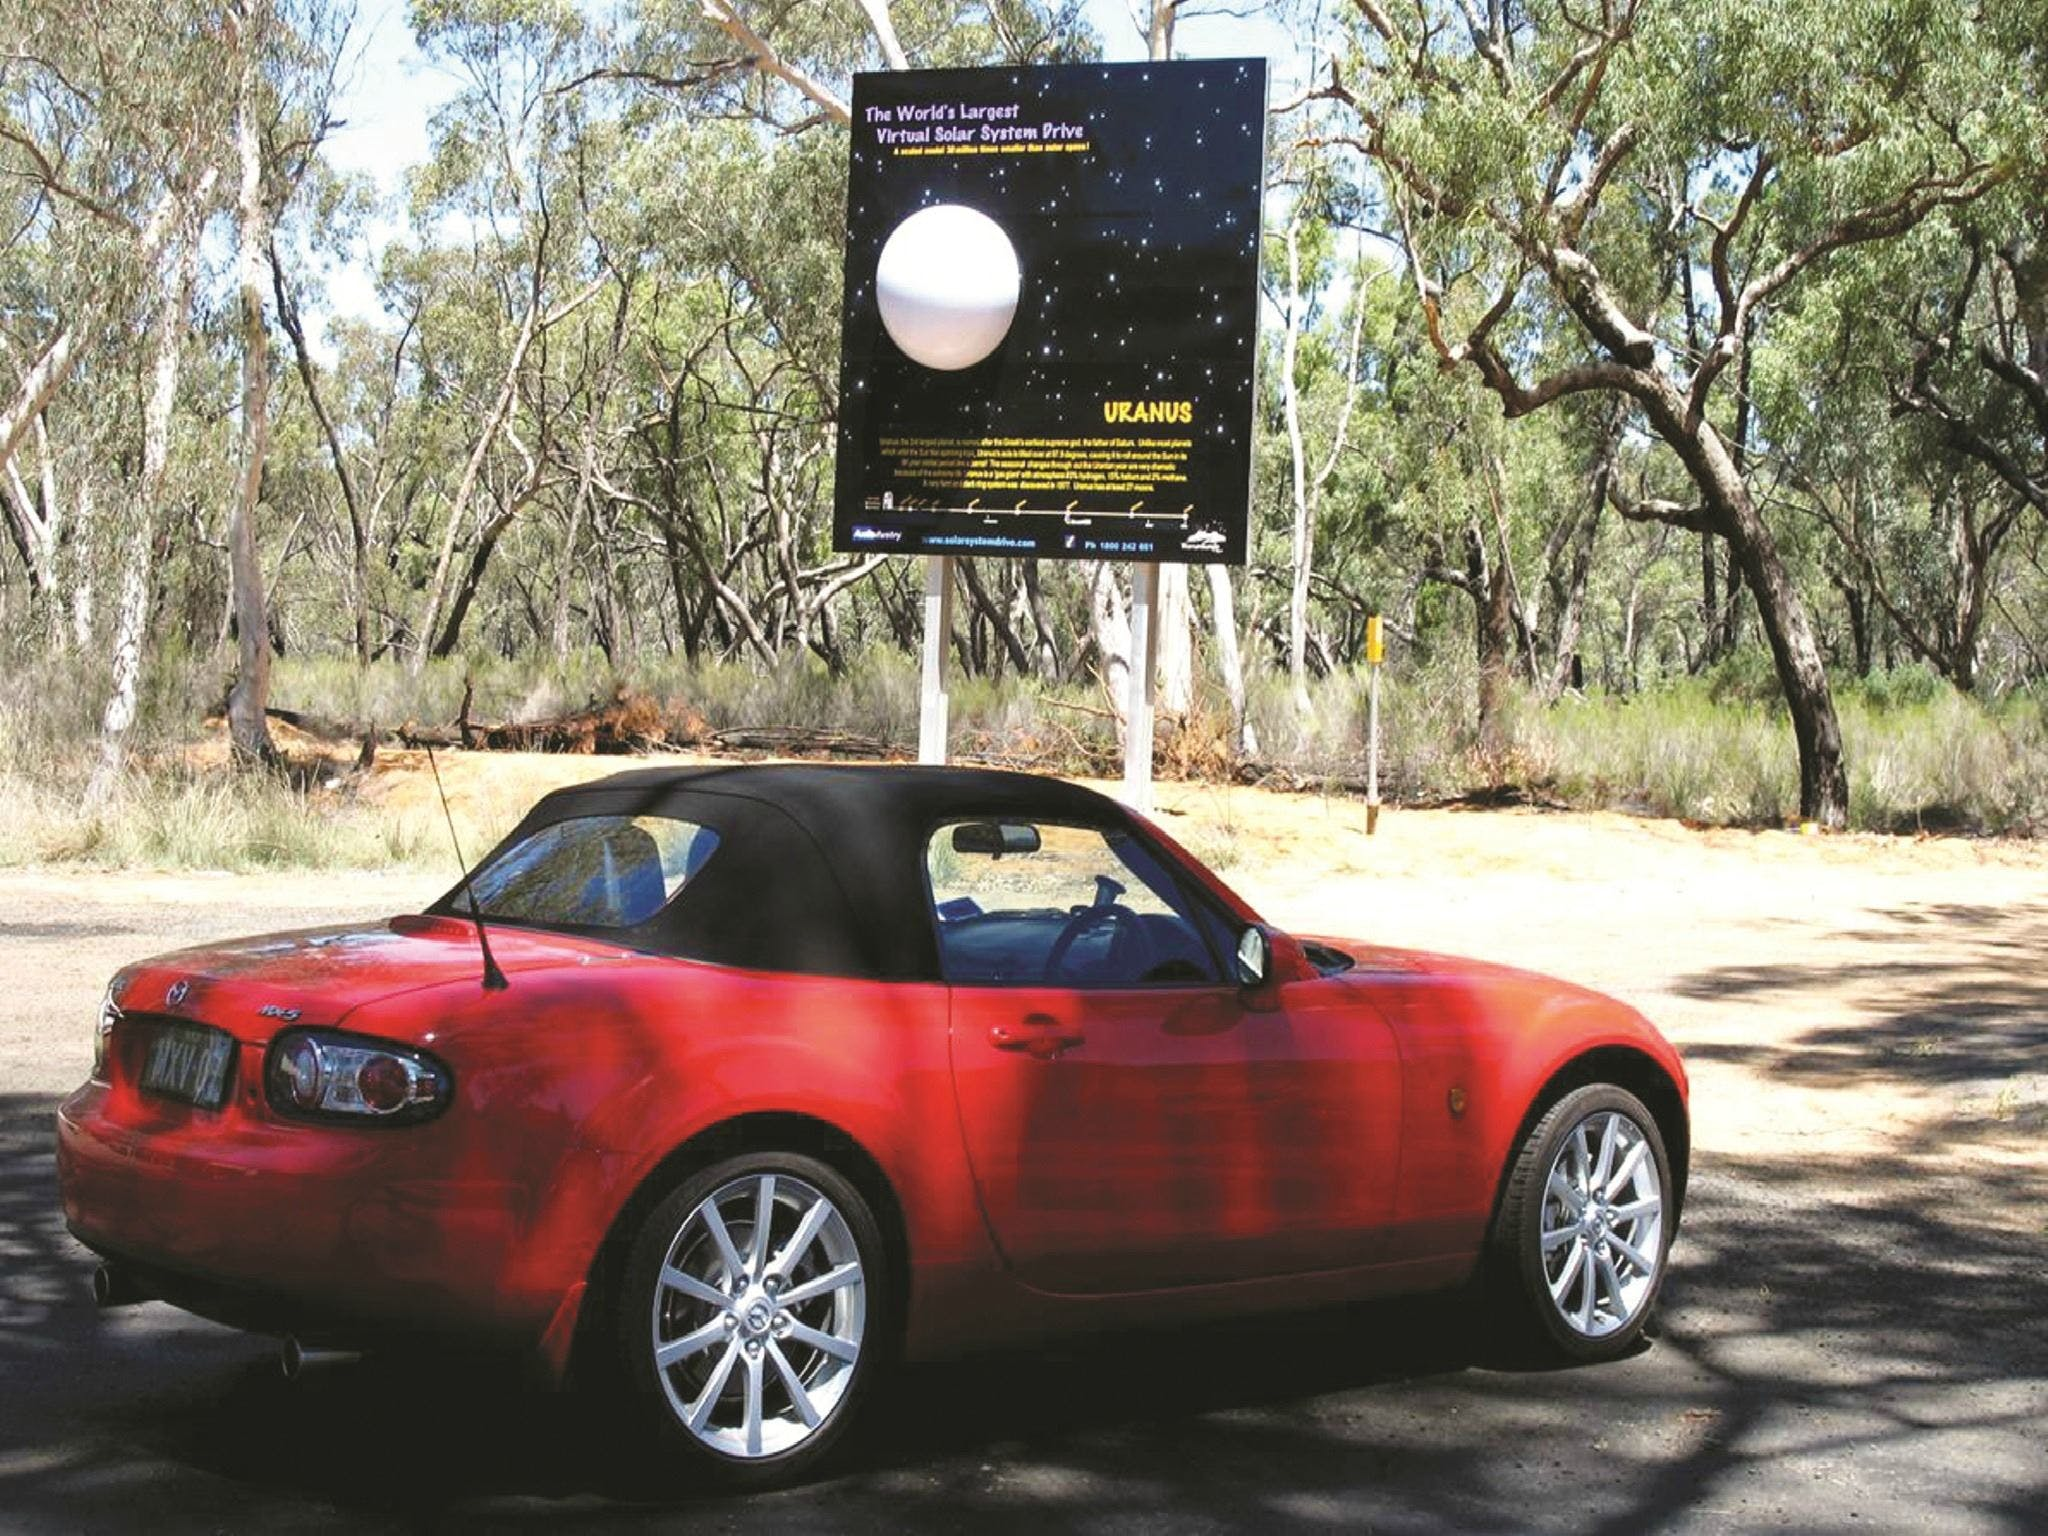 Worlds Largest Virtual Solar System Drive - Great Ocean Road Tourism